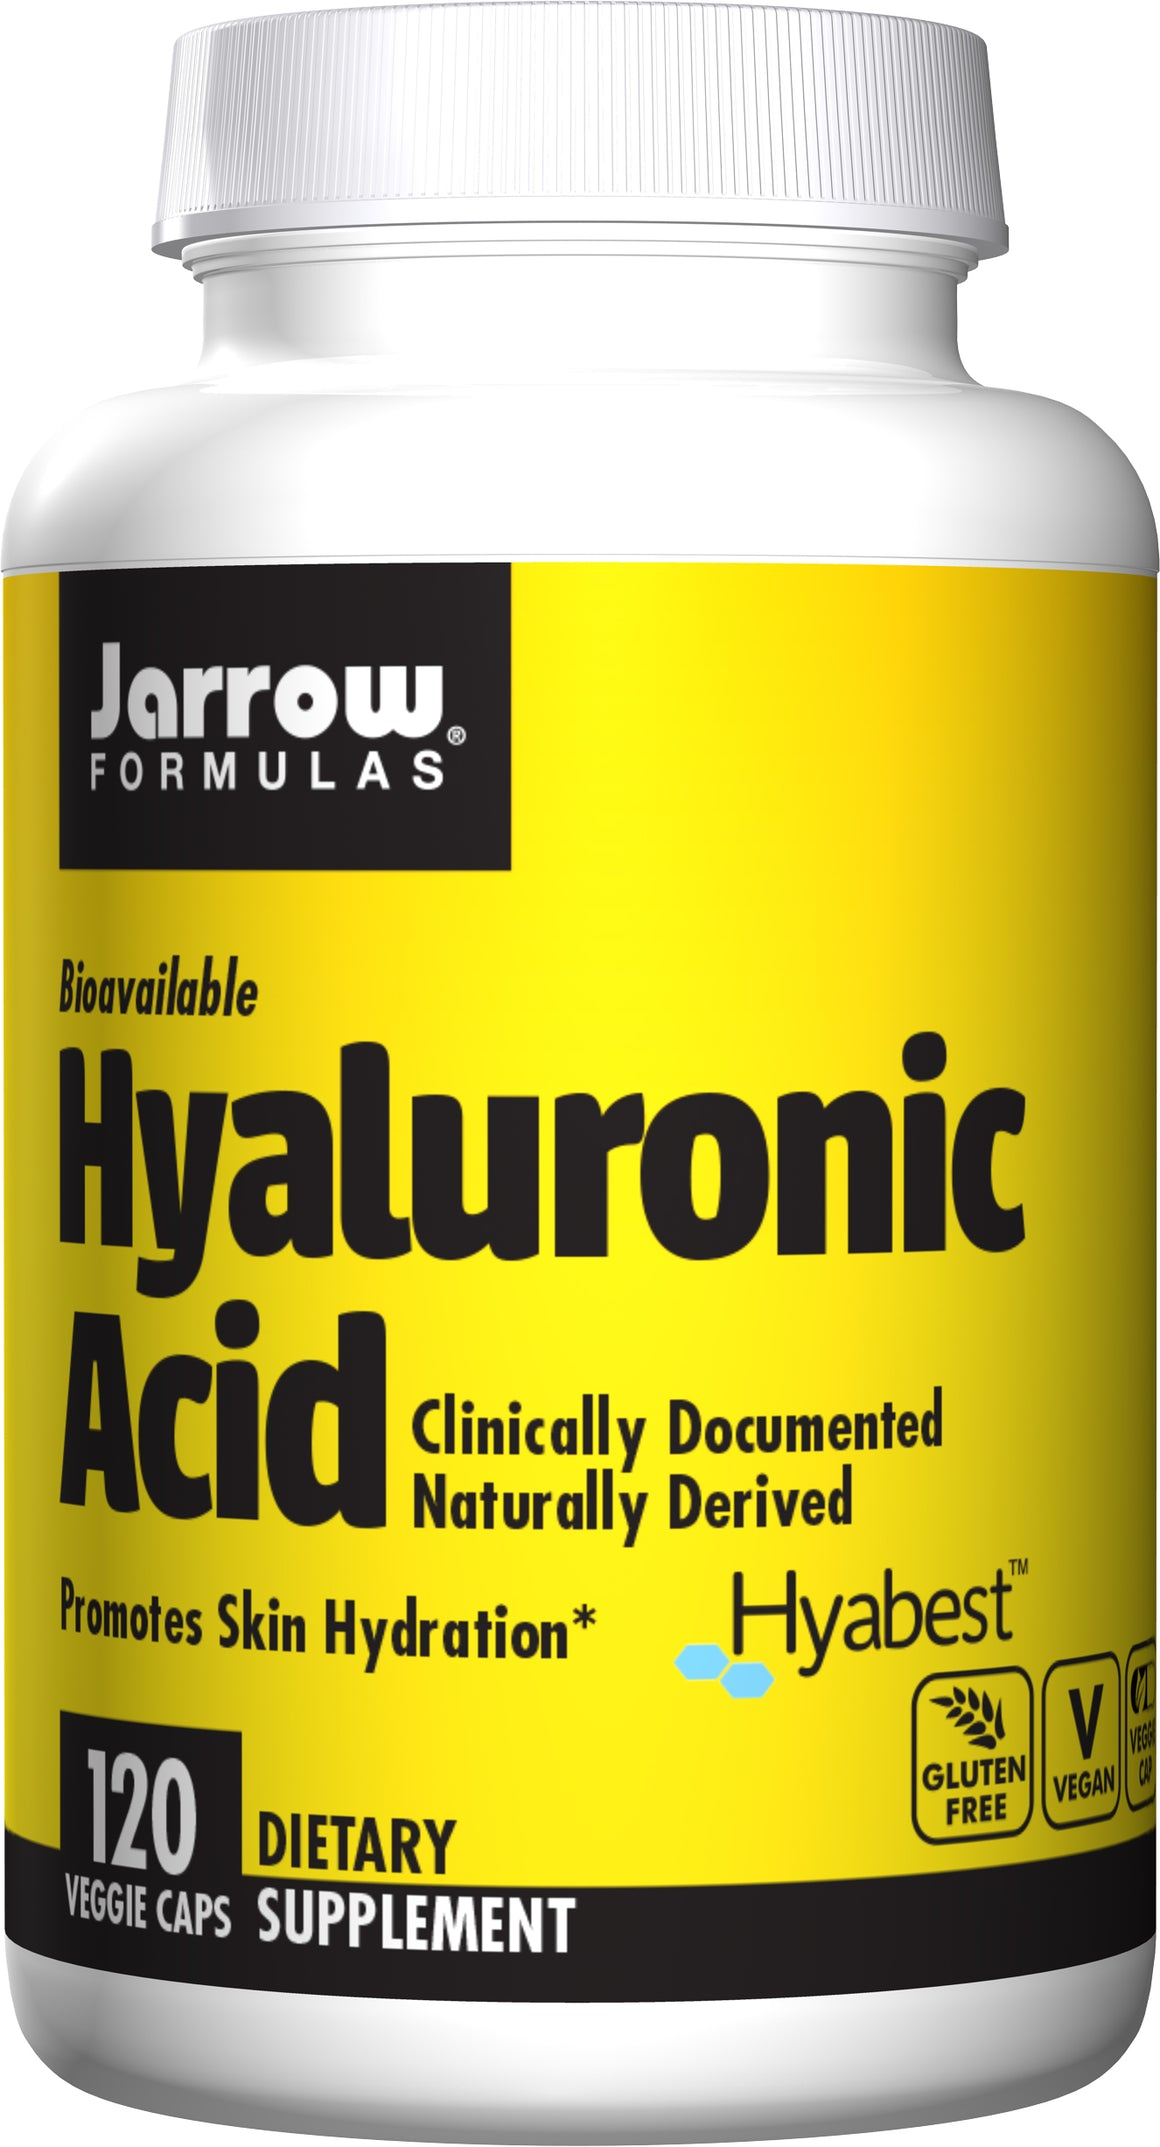 A bottle of Jarrow Hyaluronic Acid